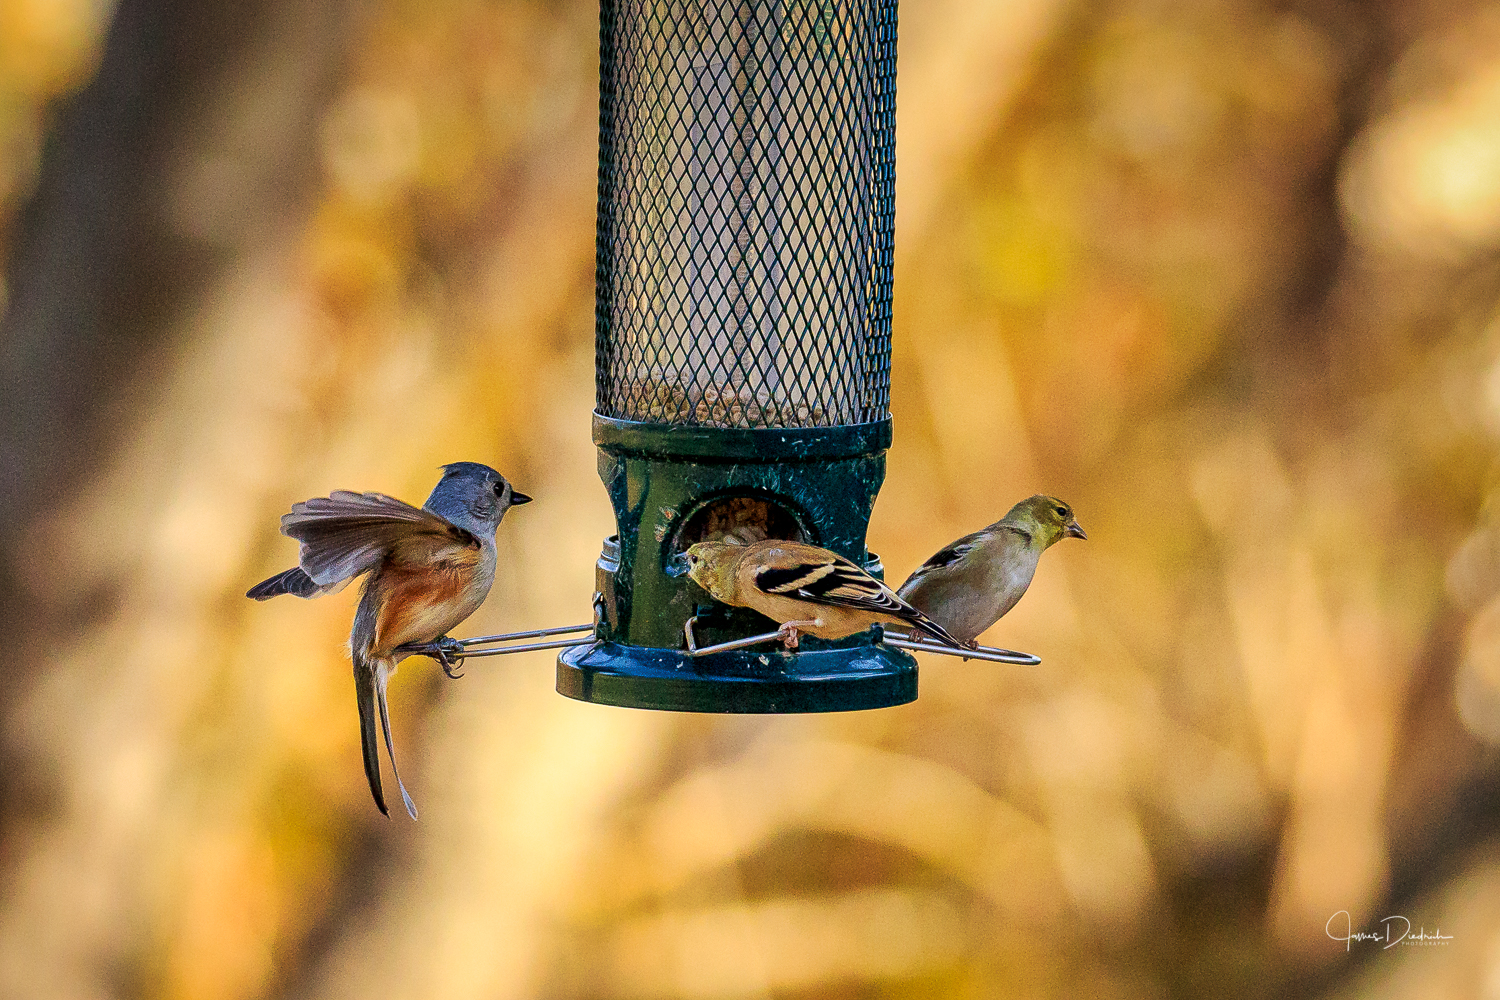 Here is a group having breakfast together.